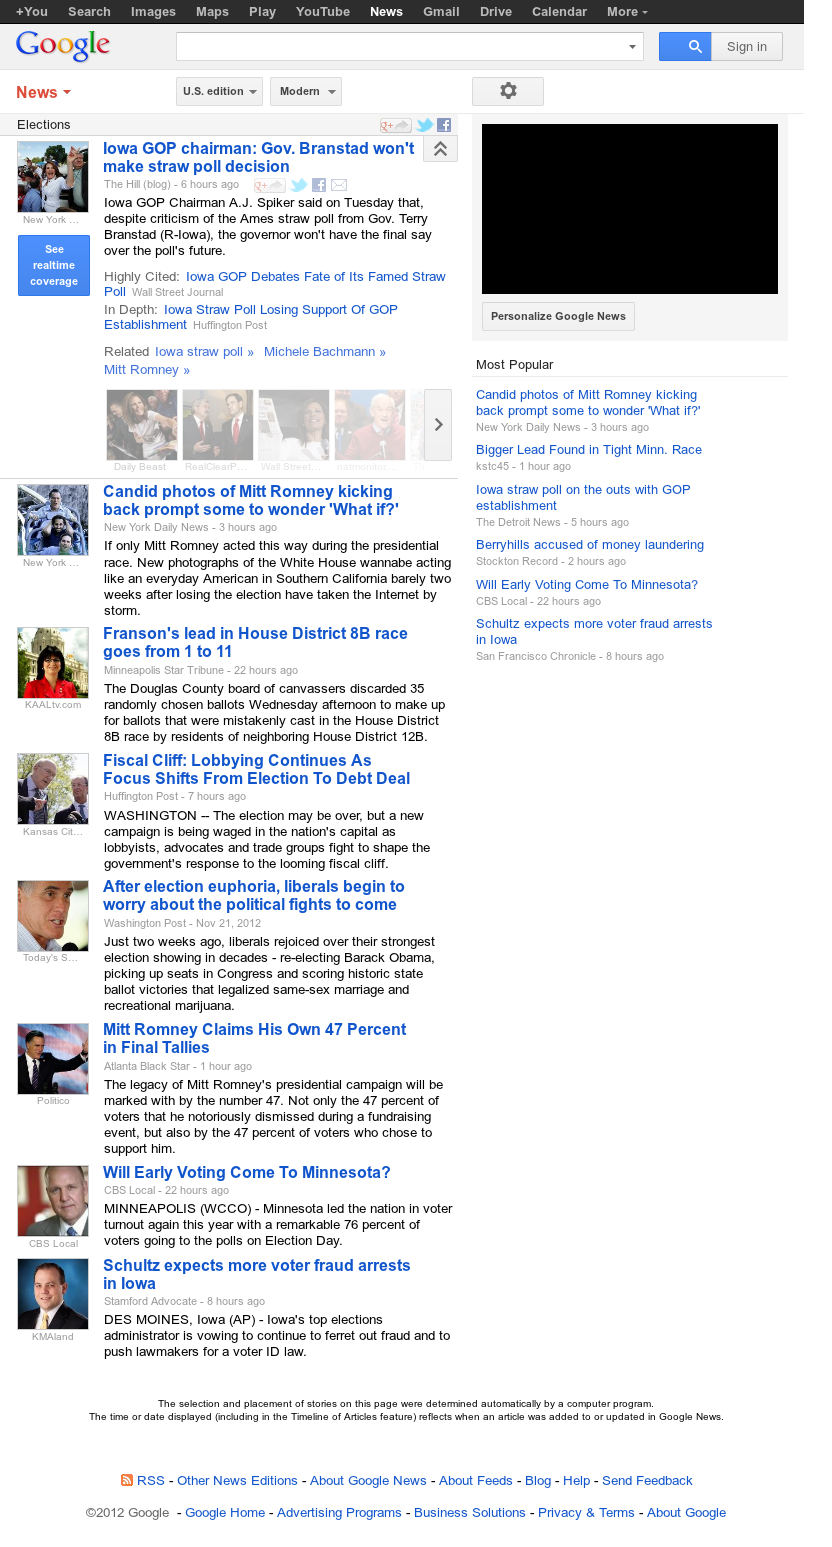 Google News: Elections at Thursday Nov. 22, 2012, 11:12 p.m. UTC